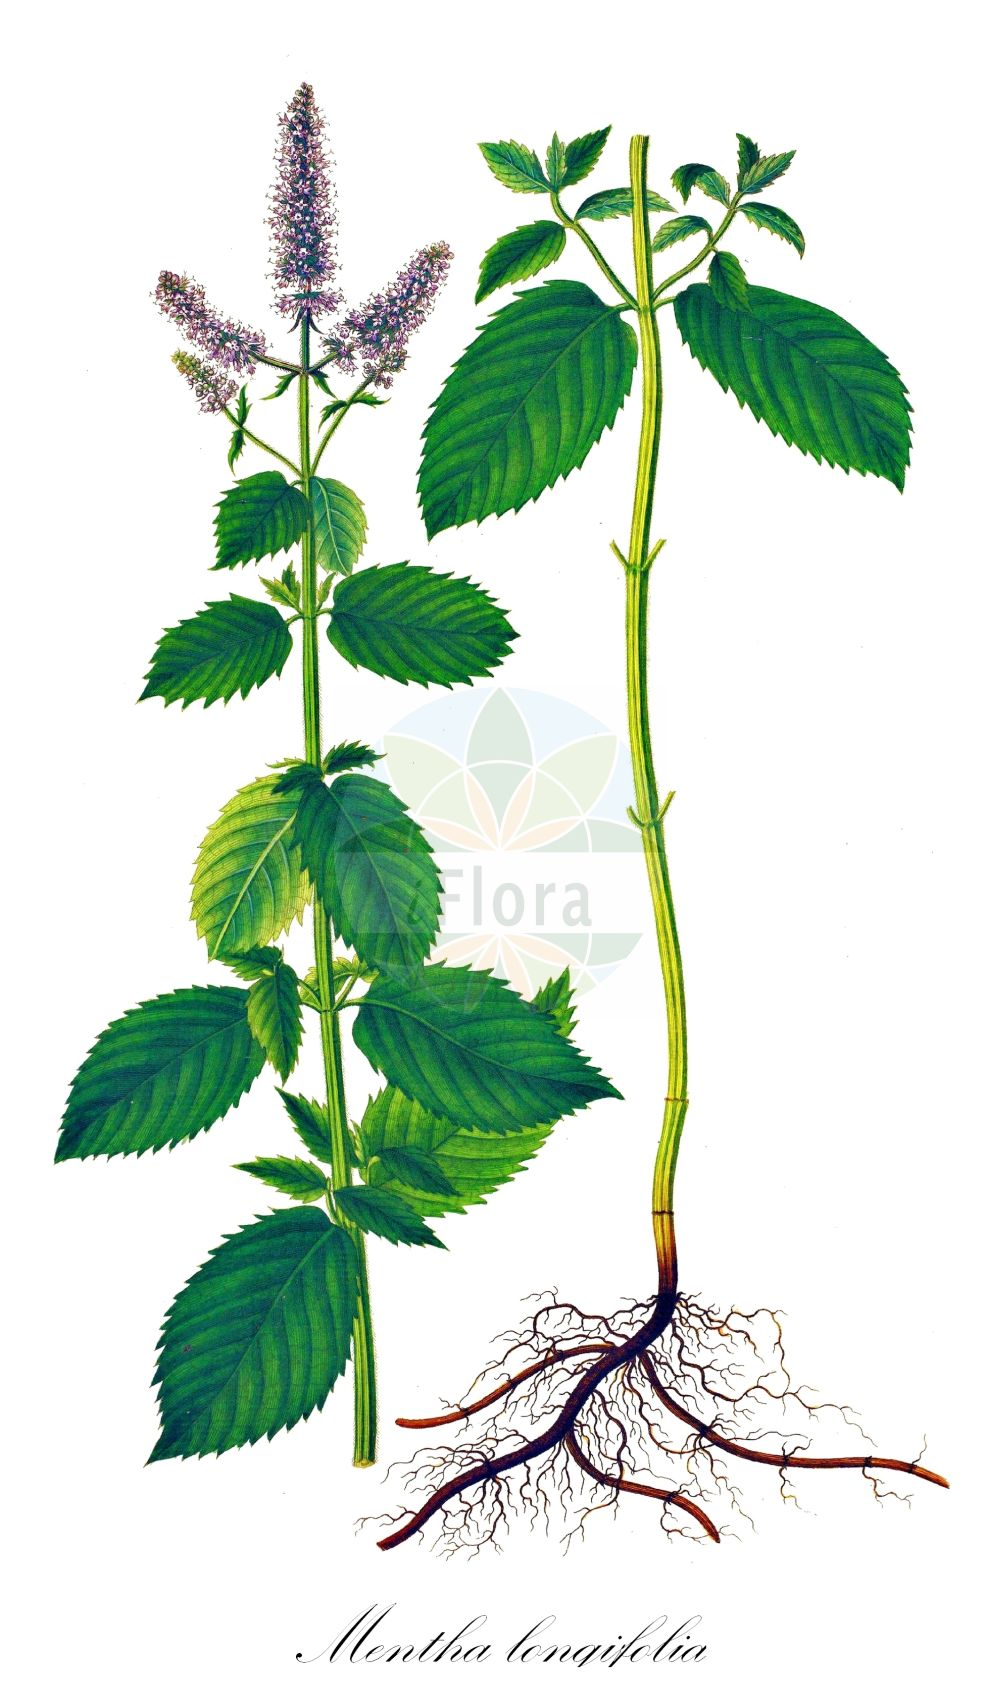 Historische Abbildung von Mentha longifolia (Rossminze - Horse Mint). Das Bild zeigt Blatt, Bluete, Frucht und Same. ---- Historical Drawing of Mentha longifolia (Rossminze - Horse Mint).The image is showing leaf, flower, fruit and seed.(Mentha longifolia,Rossminze,Horse Mint,Mentha spicata var. longifolia,Mentha,Minze,Mint,Lamiaceae,Lippenbluetengewaechse;Lippenbluetler,Nettle family,Blatt,Bluete,Frucht,Same,leaf,flower,fruit,seed,Oeder (1761-1883))